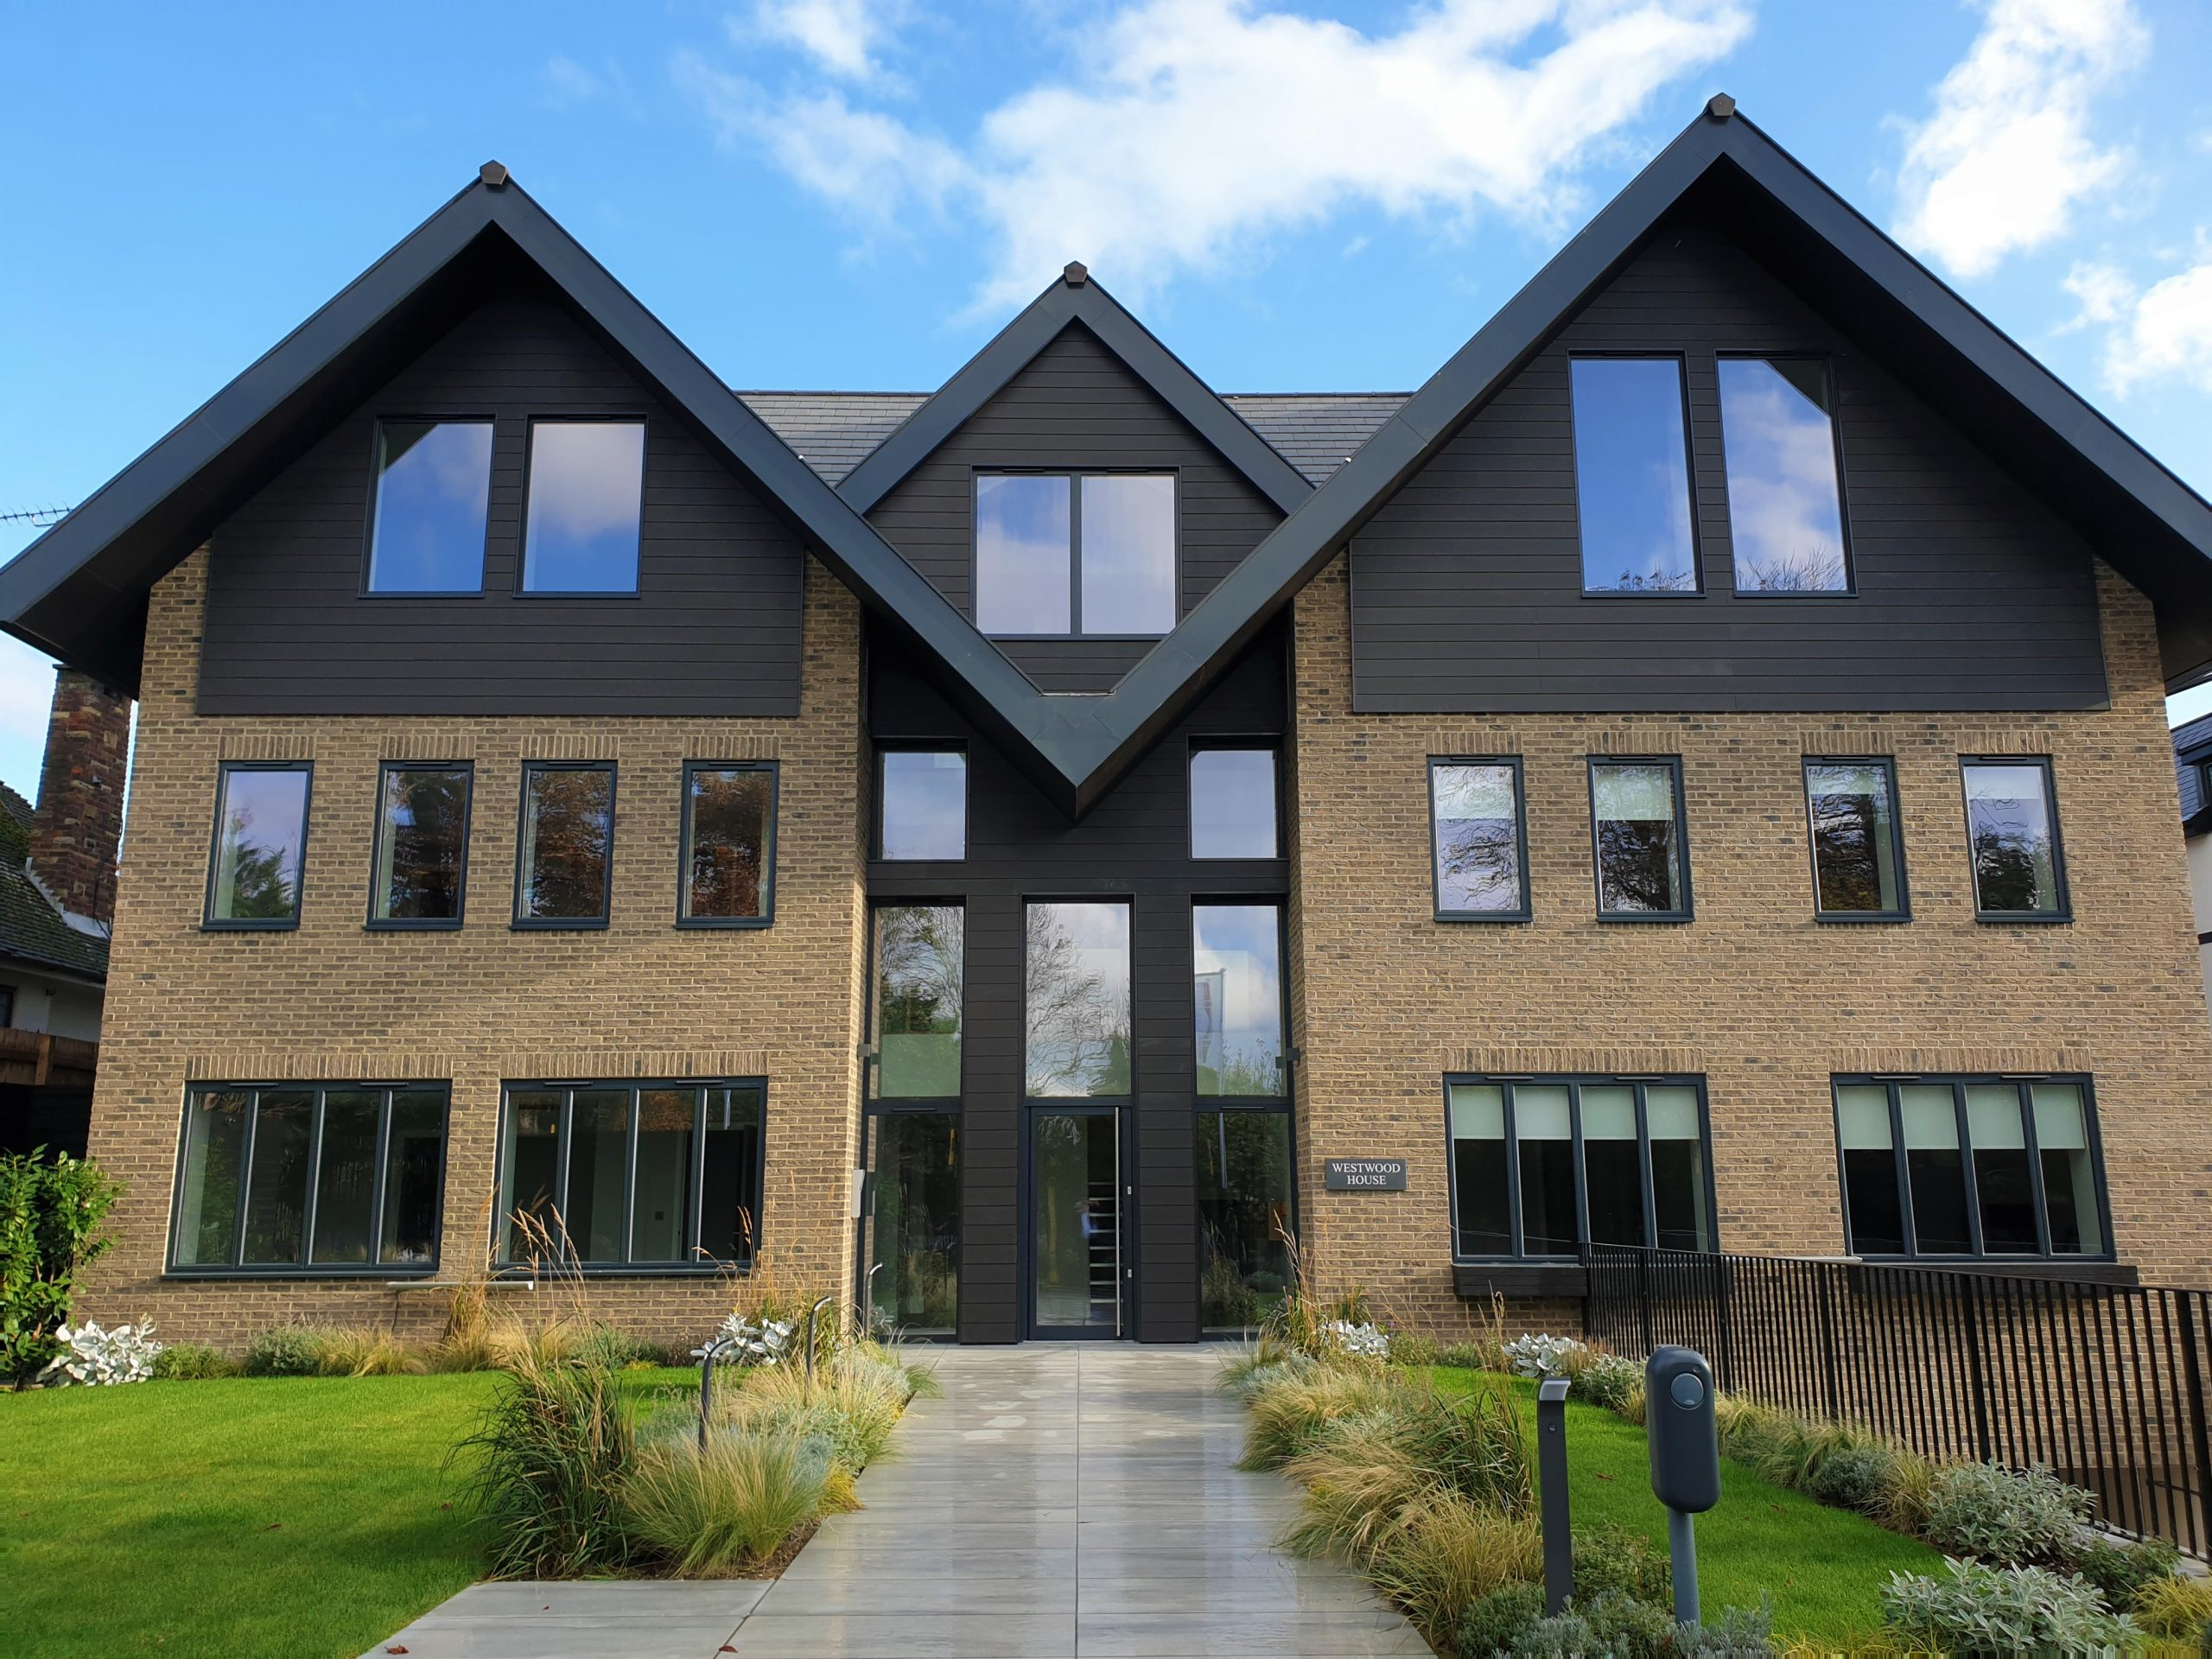 152 High Road in Chigwell is Now Complete